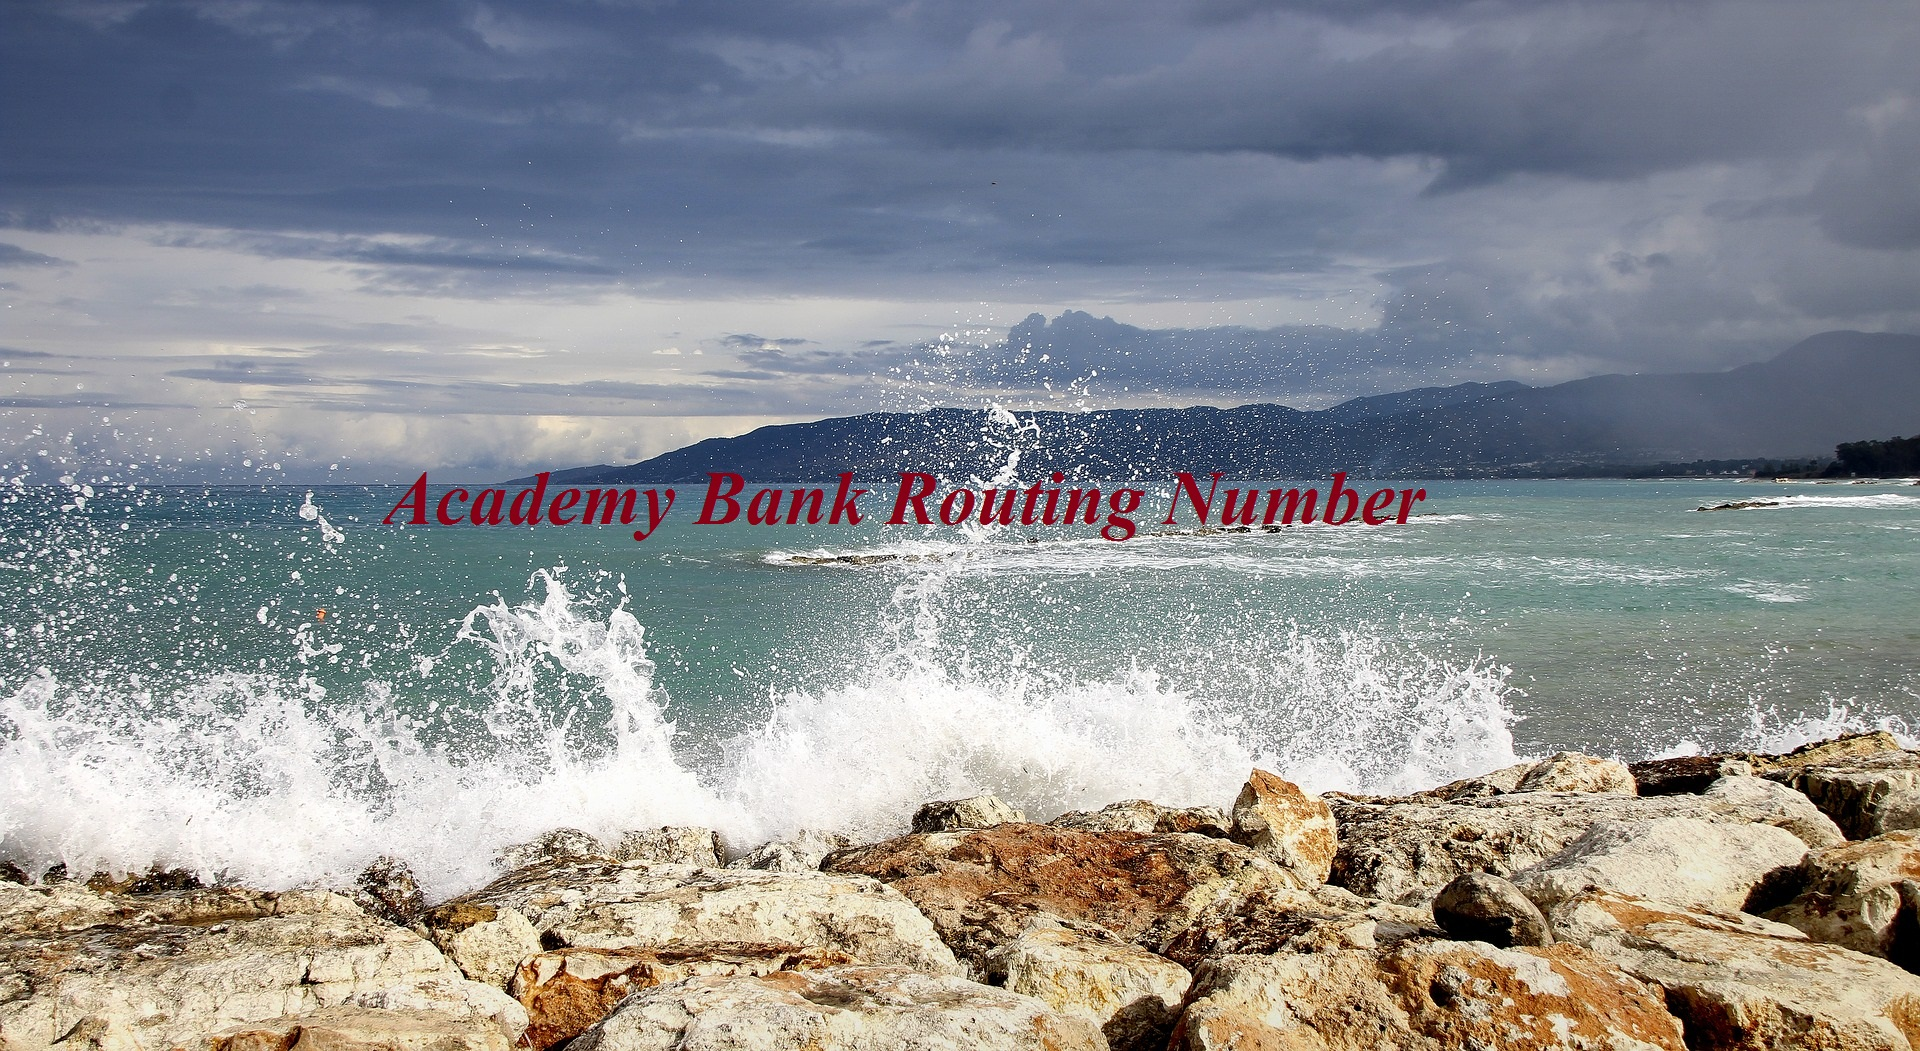 Academy Bank Routing Number